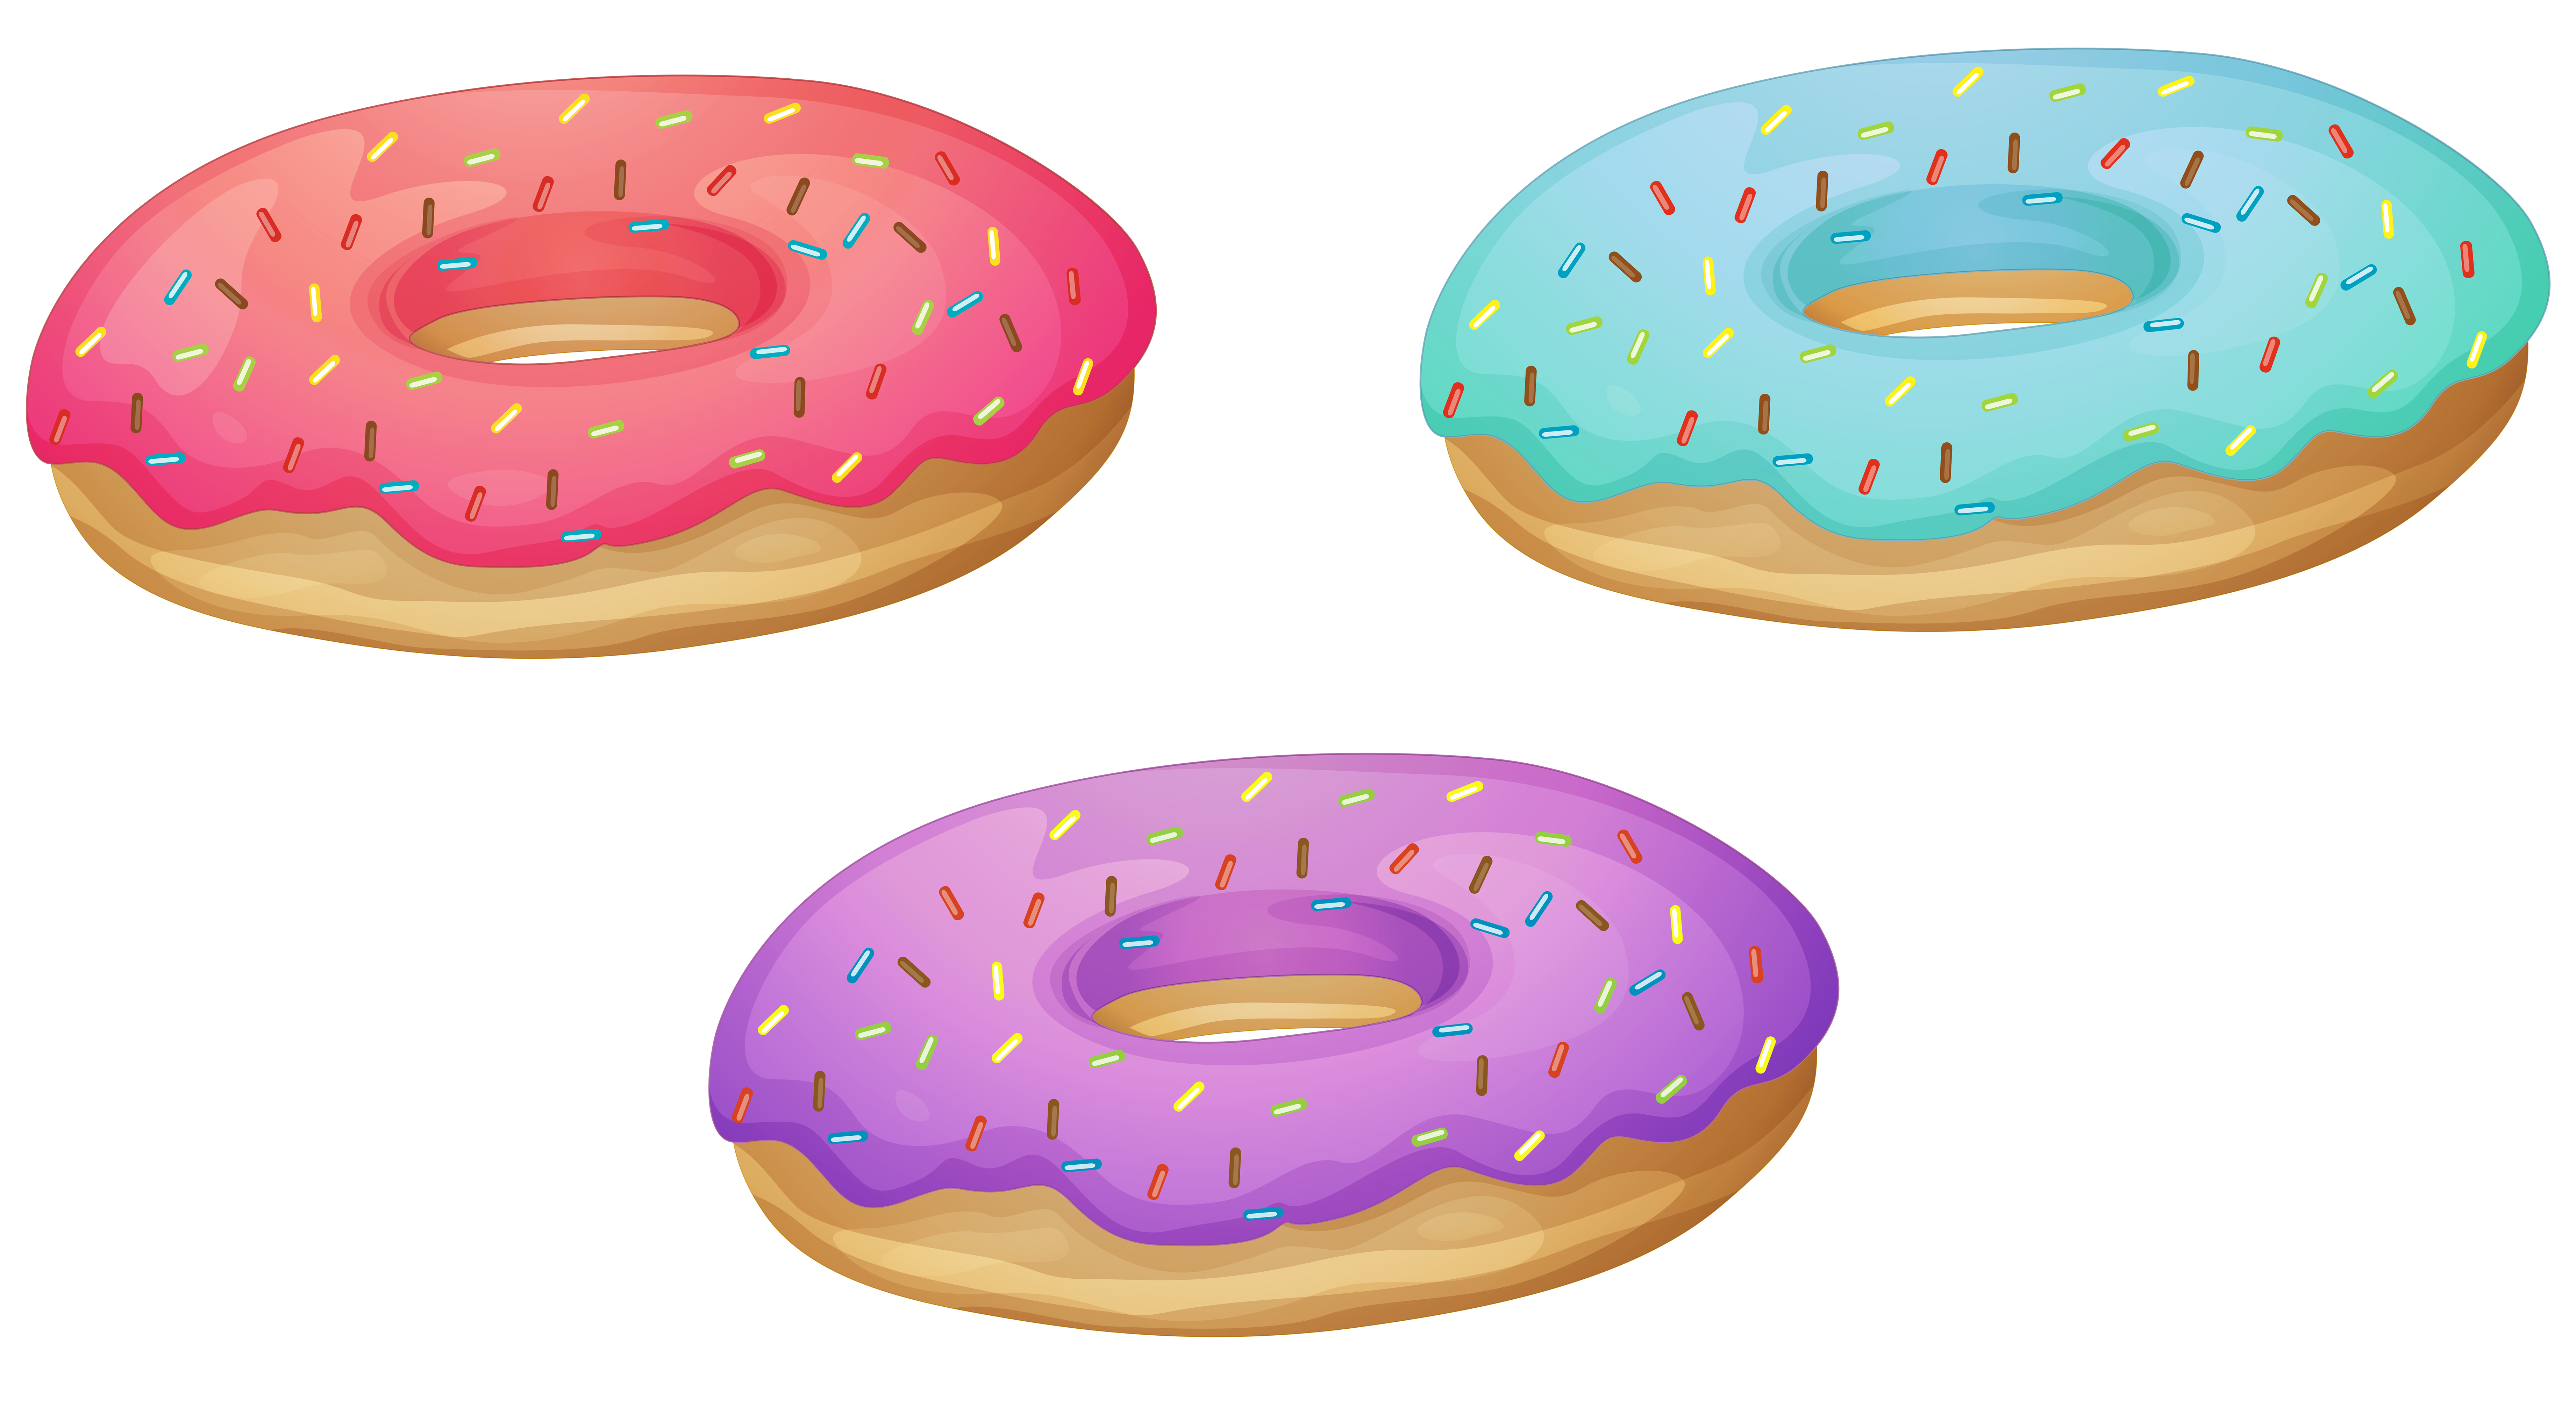 Doughnut transparent clipart. Donuts png image gallery